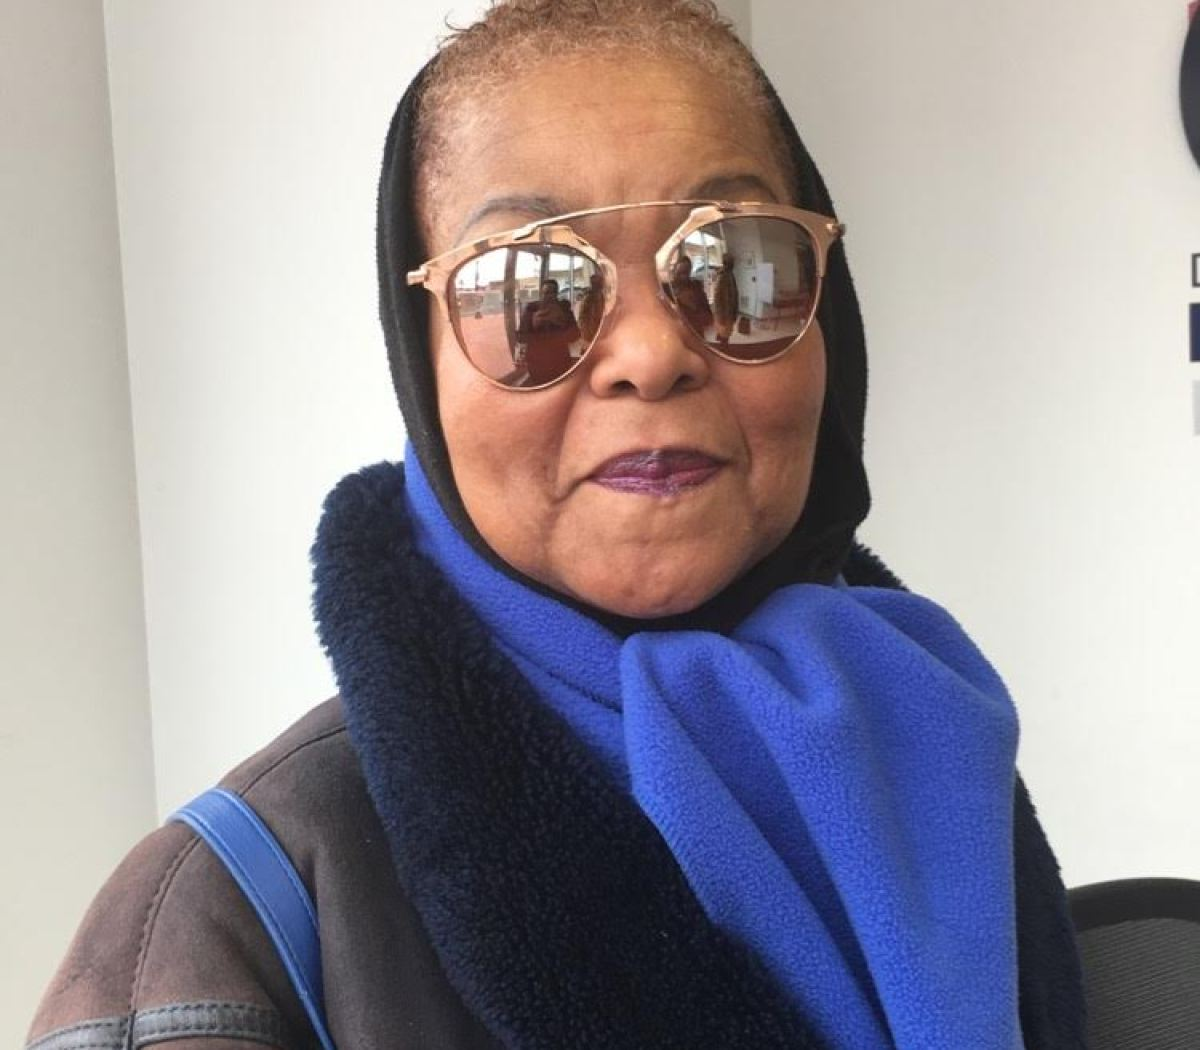 Patricia Terrell, Washington, D.C. — I think it's whatever the black community does to take advantage of the situation. … Like, these are his policies — how do we find a way to take advantage?